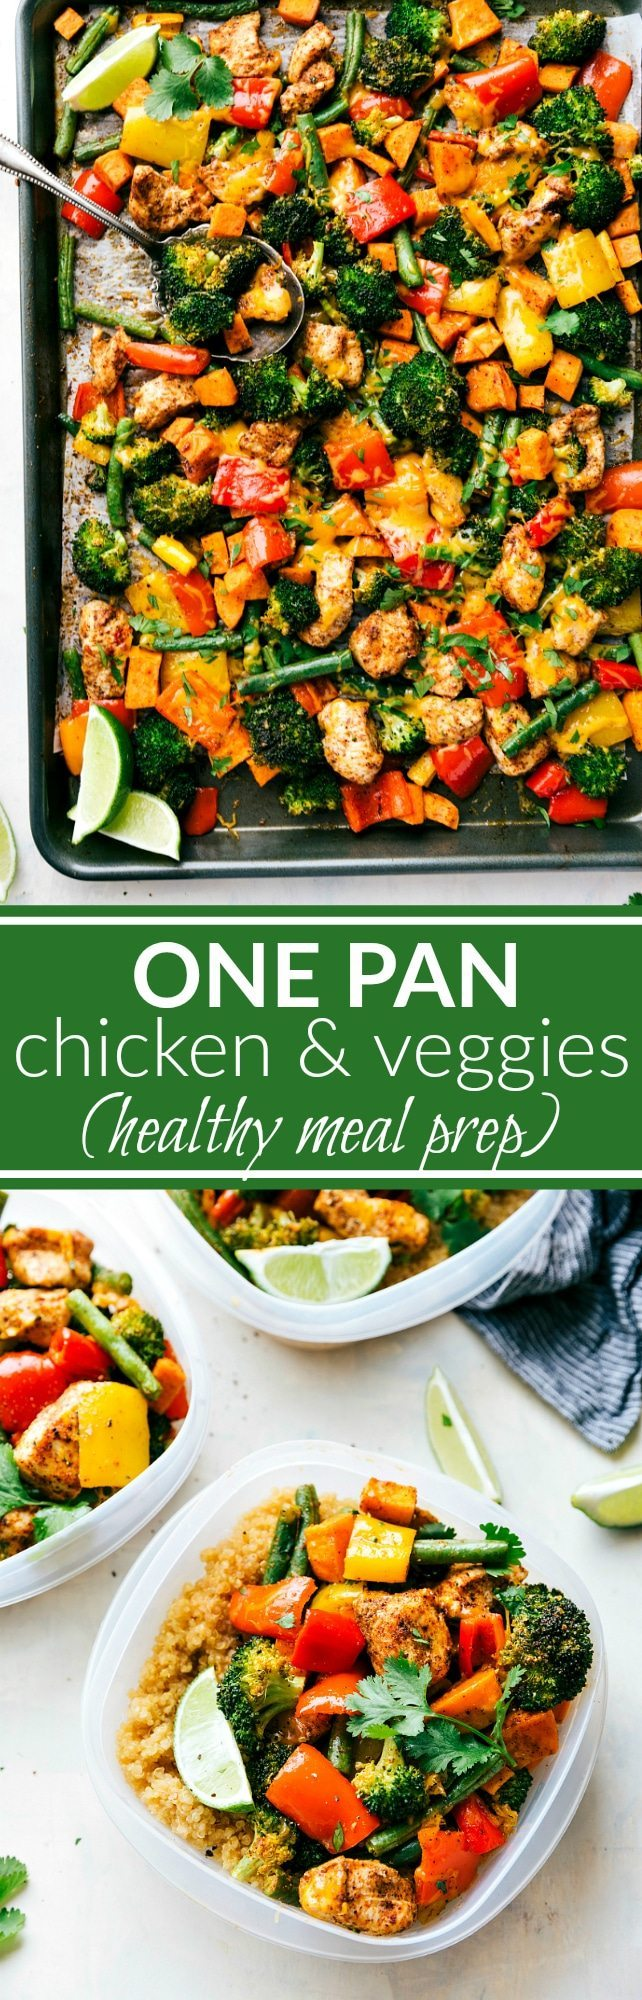 One Pan Healthy Chicken and Veggies - a great healthy way to meal prep for the week!via chelseasmessyapron.com